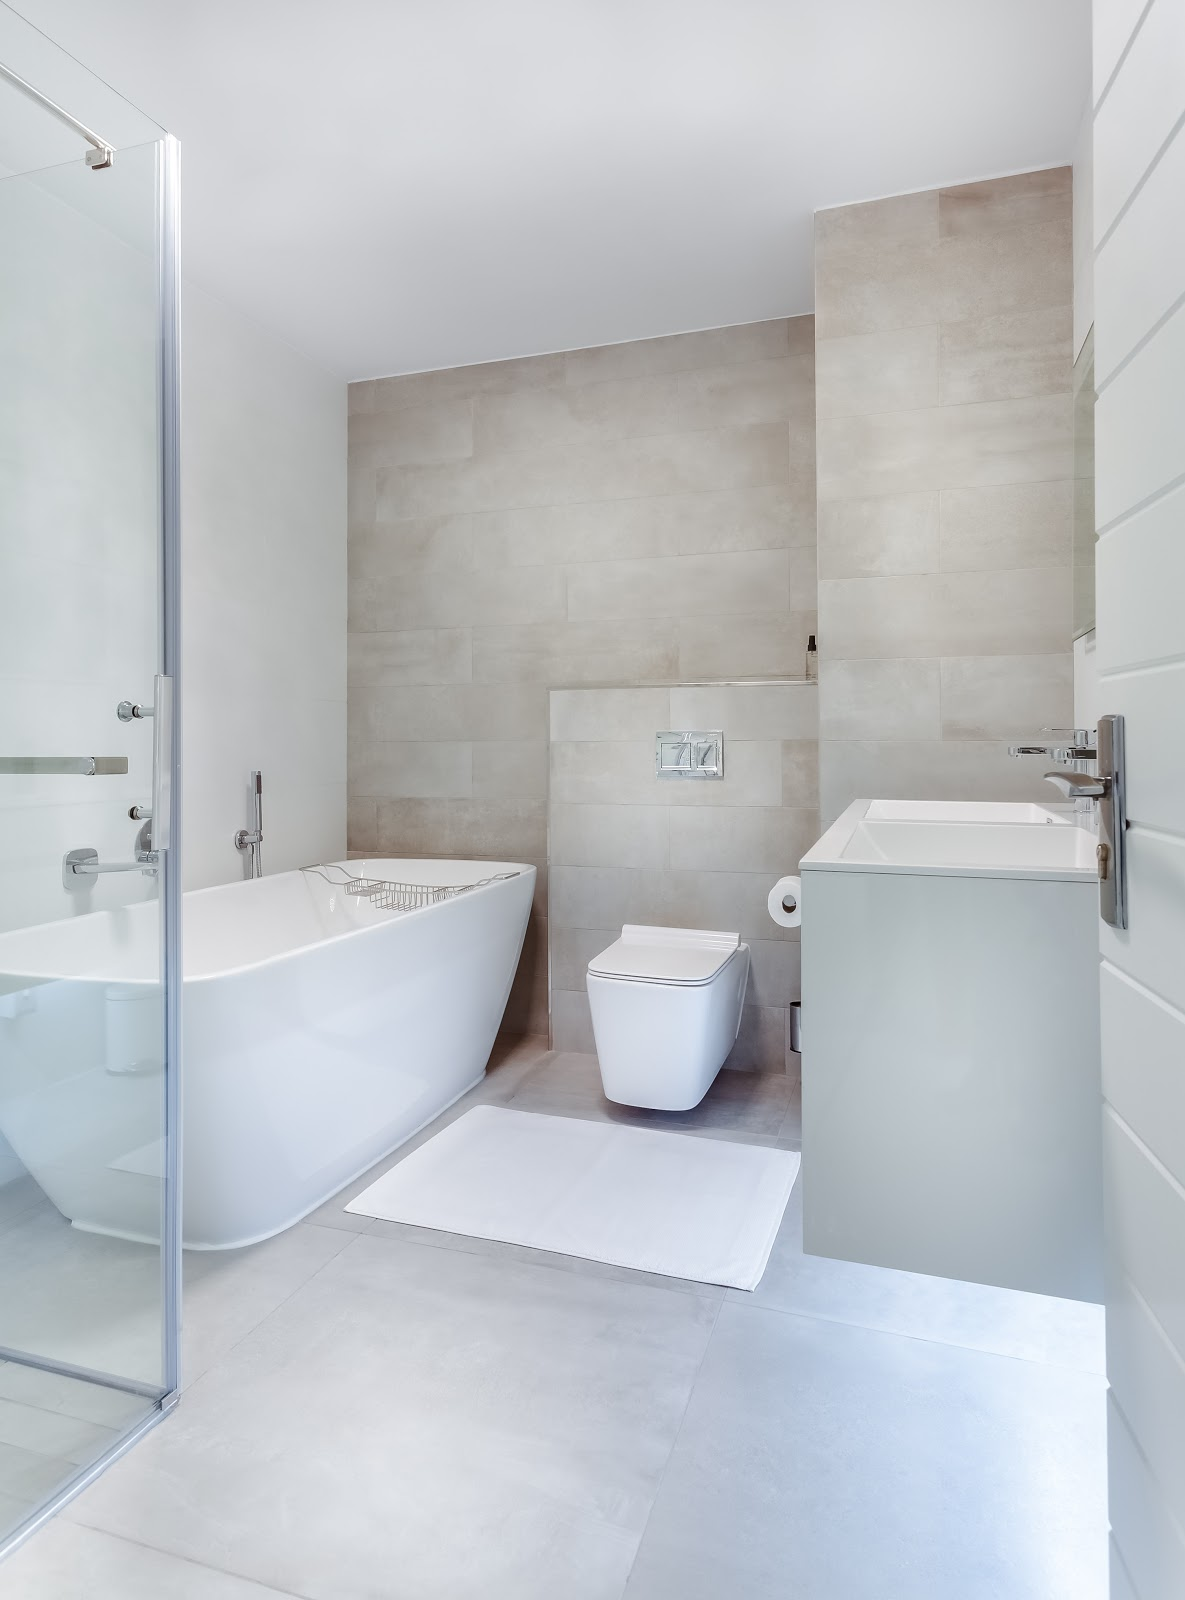 all-white bathroom with a large soaker tub.